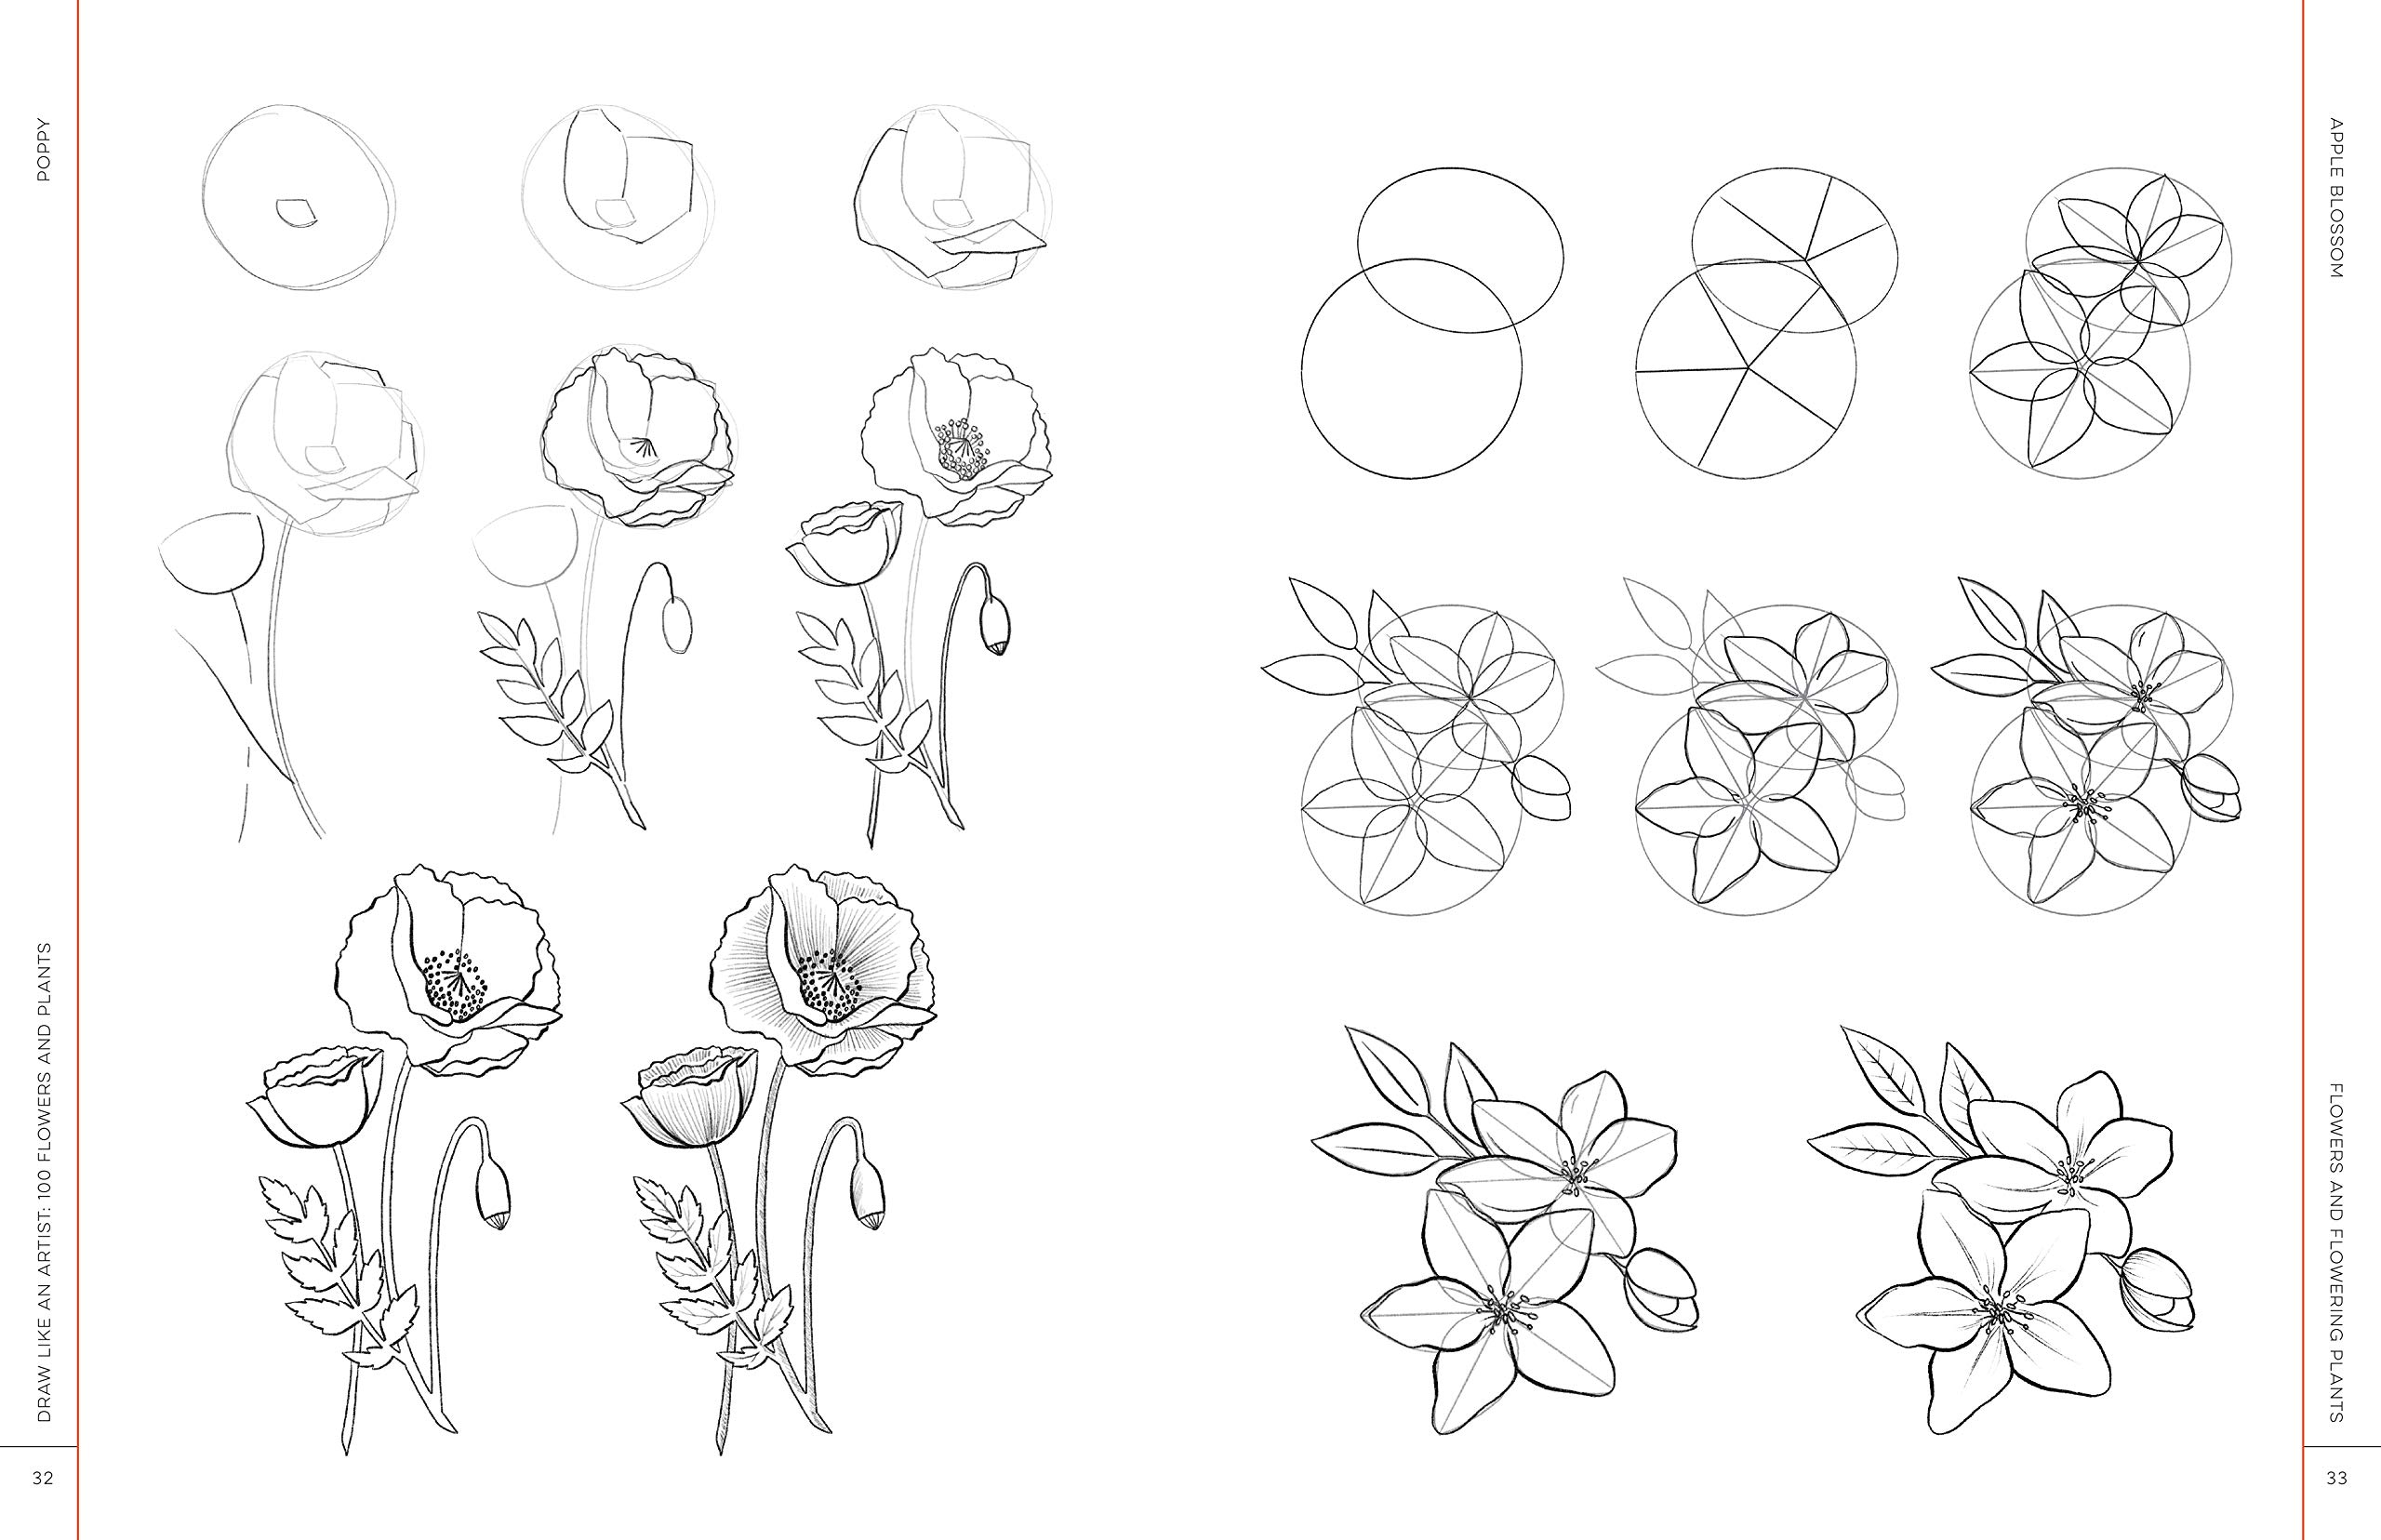 Amazon Com Draw Like An Artist 100 Flowers And Plants Step By Step Realistic Line Drawing A Sourcebook For Aspiring Artists And Designers 9781631597558 Washburn Ms Melissa Books